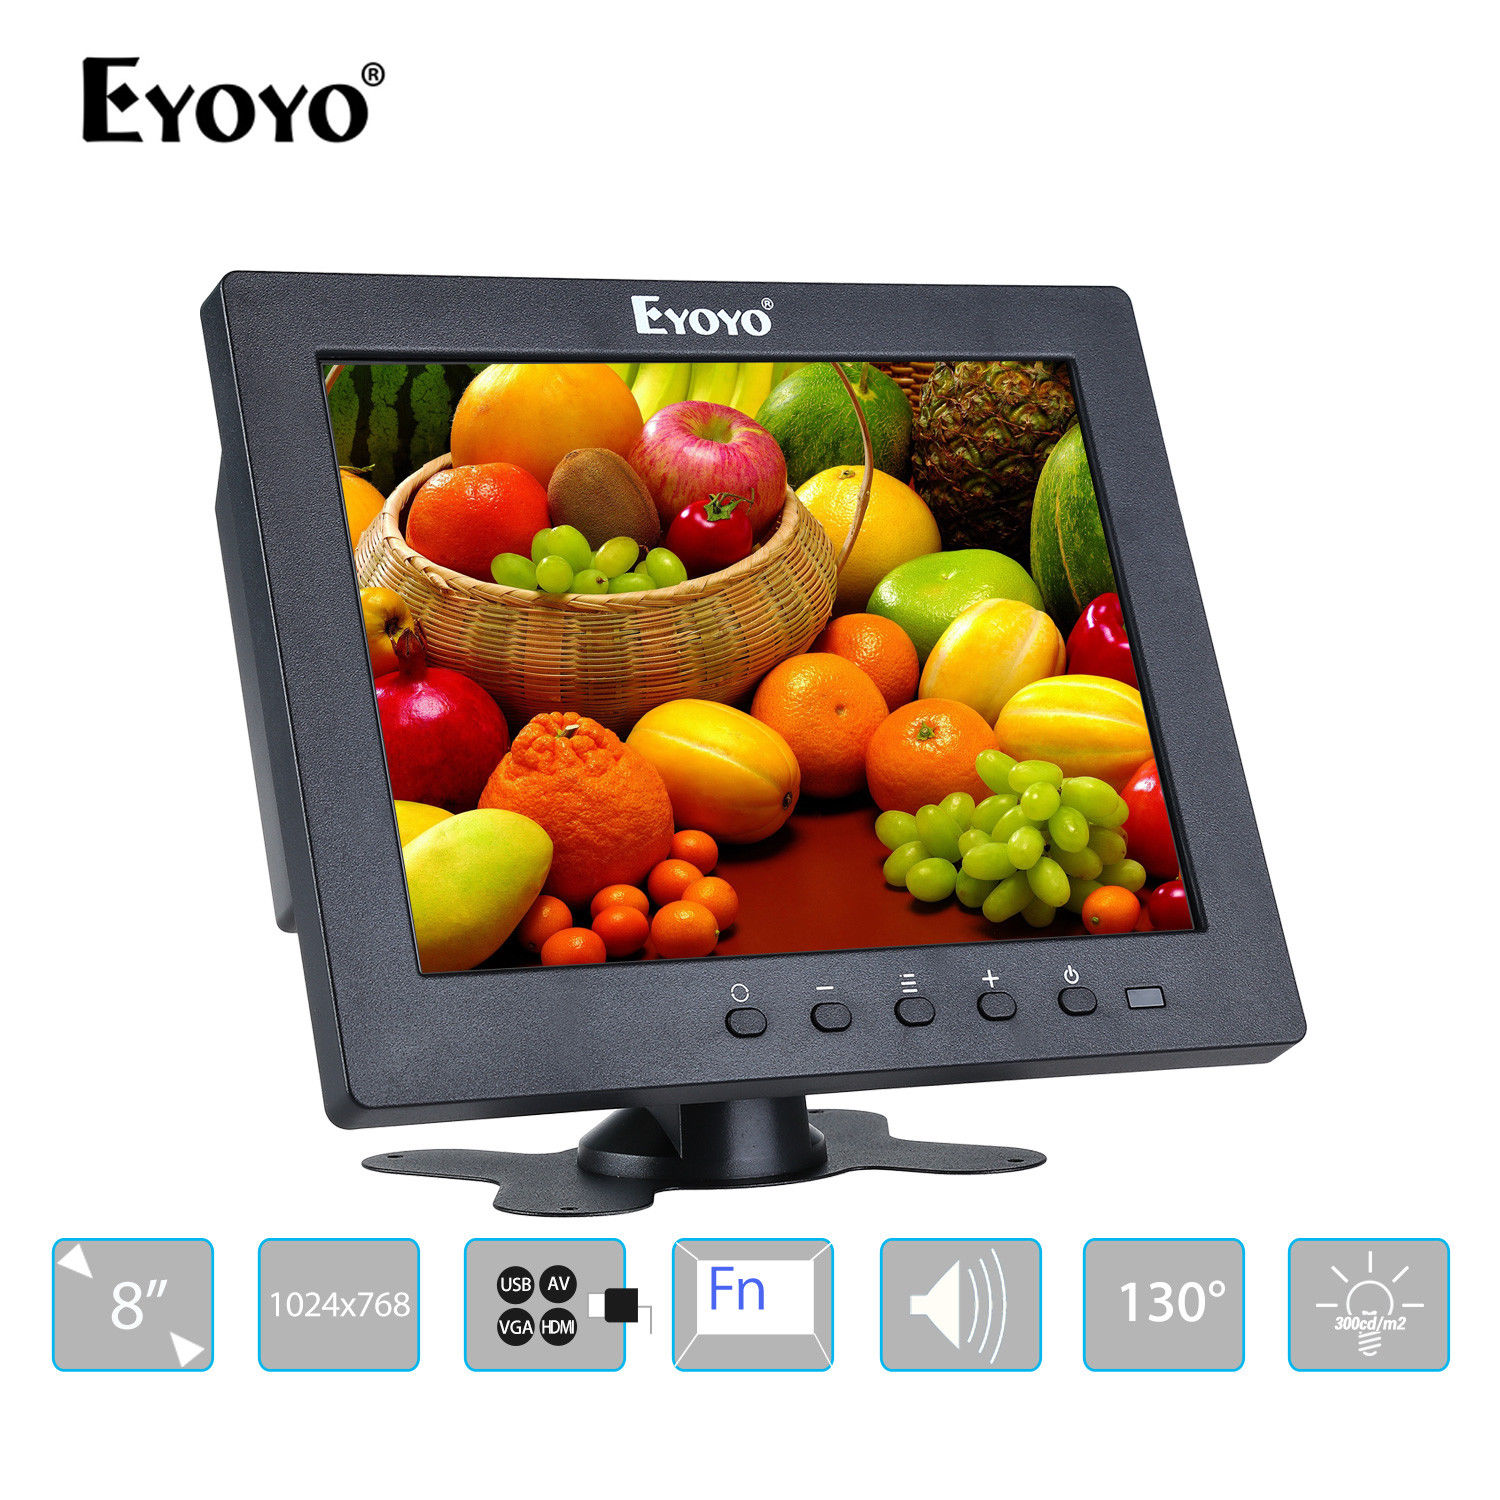 Eyoyo S801T Monitor 8 1024x768 LCD Screen Display With BNC/HDMI Output Built-in Loudspeakers For CCTV DVD PC Laptop DVR Camera eyoyo g08 160 degree 8 inch 400 1 tft lcd monitor screen 4 3 1024 768 hdmi av vga video audio for cctv fpv with loudspeaker